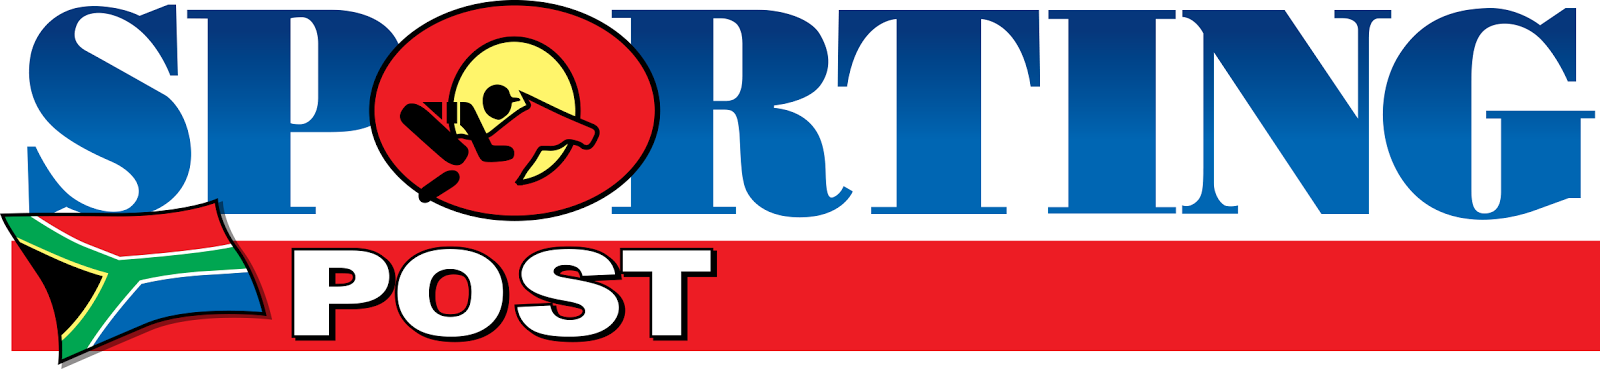 Sporting Post - Horse Racing Newspaper - Logo - South Africa - Publication